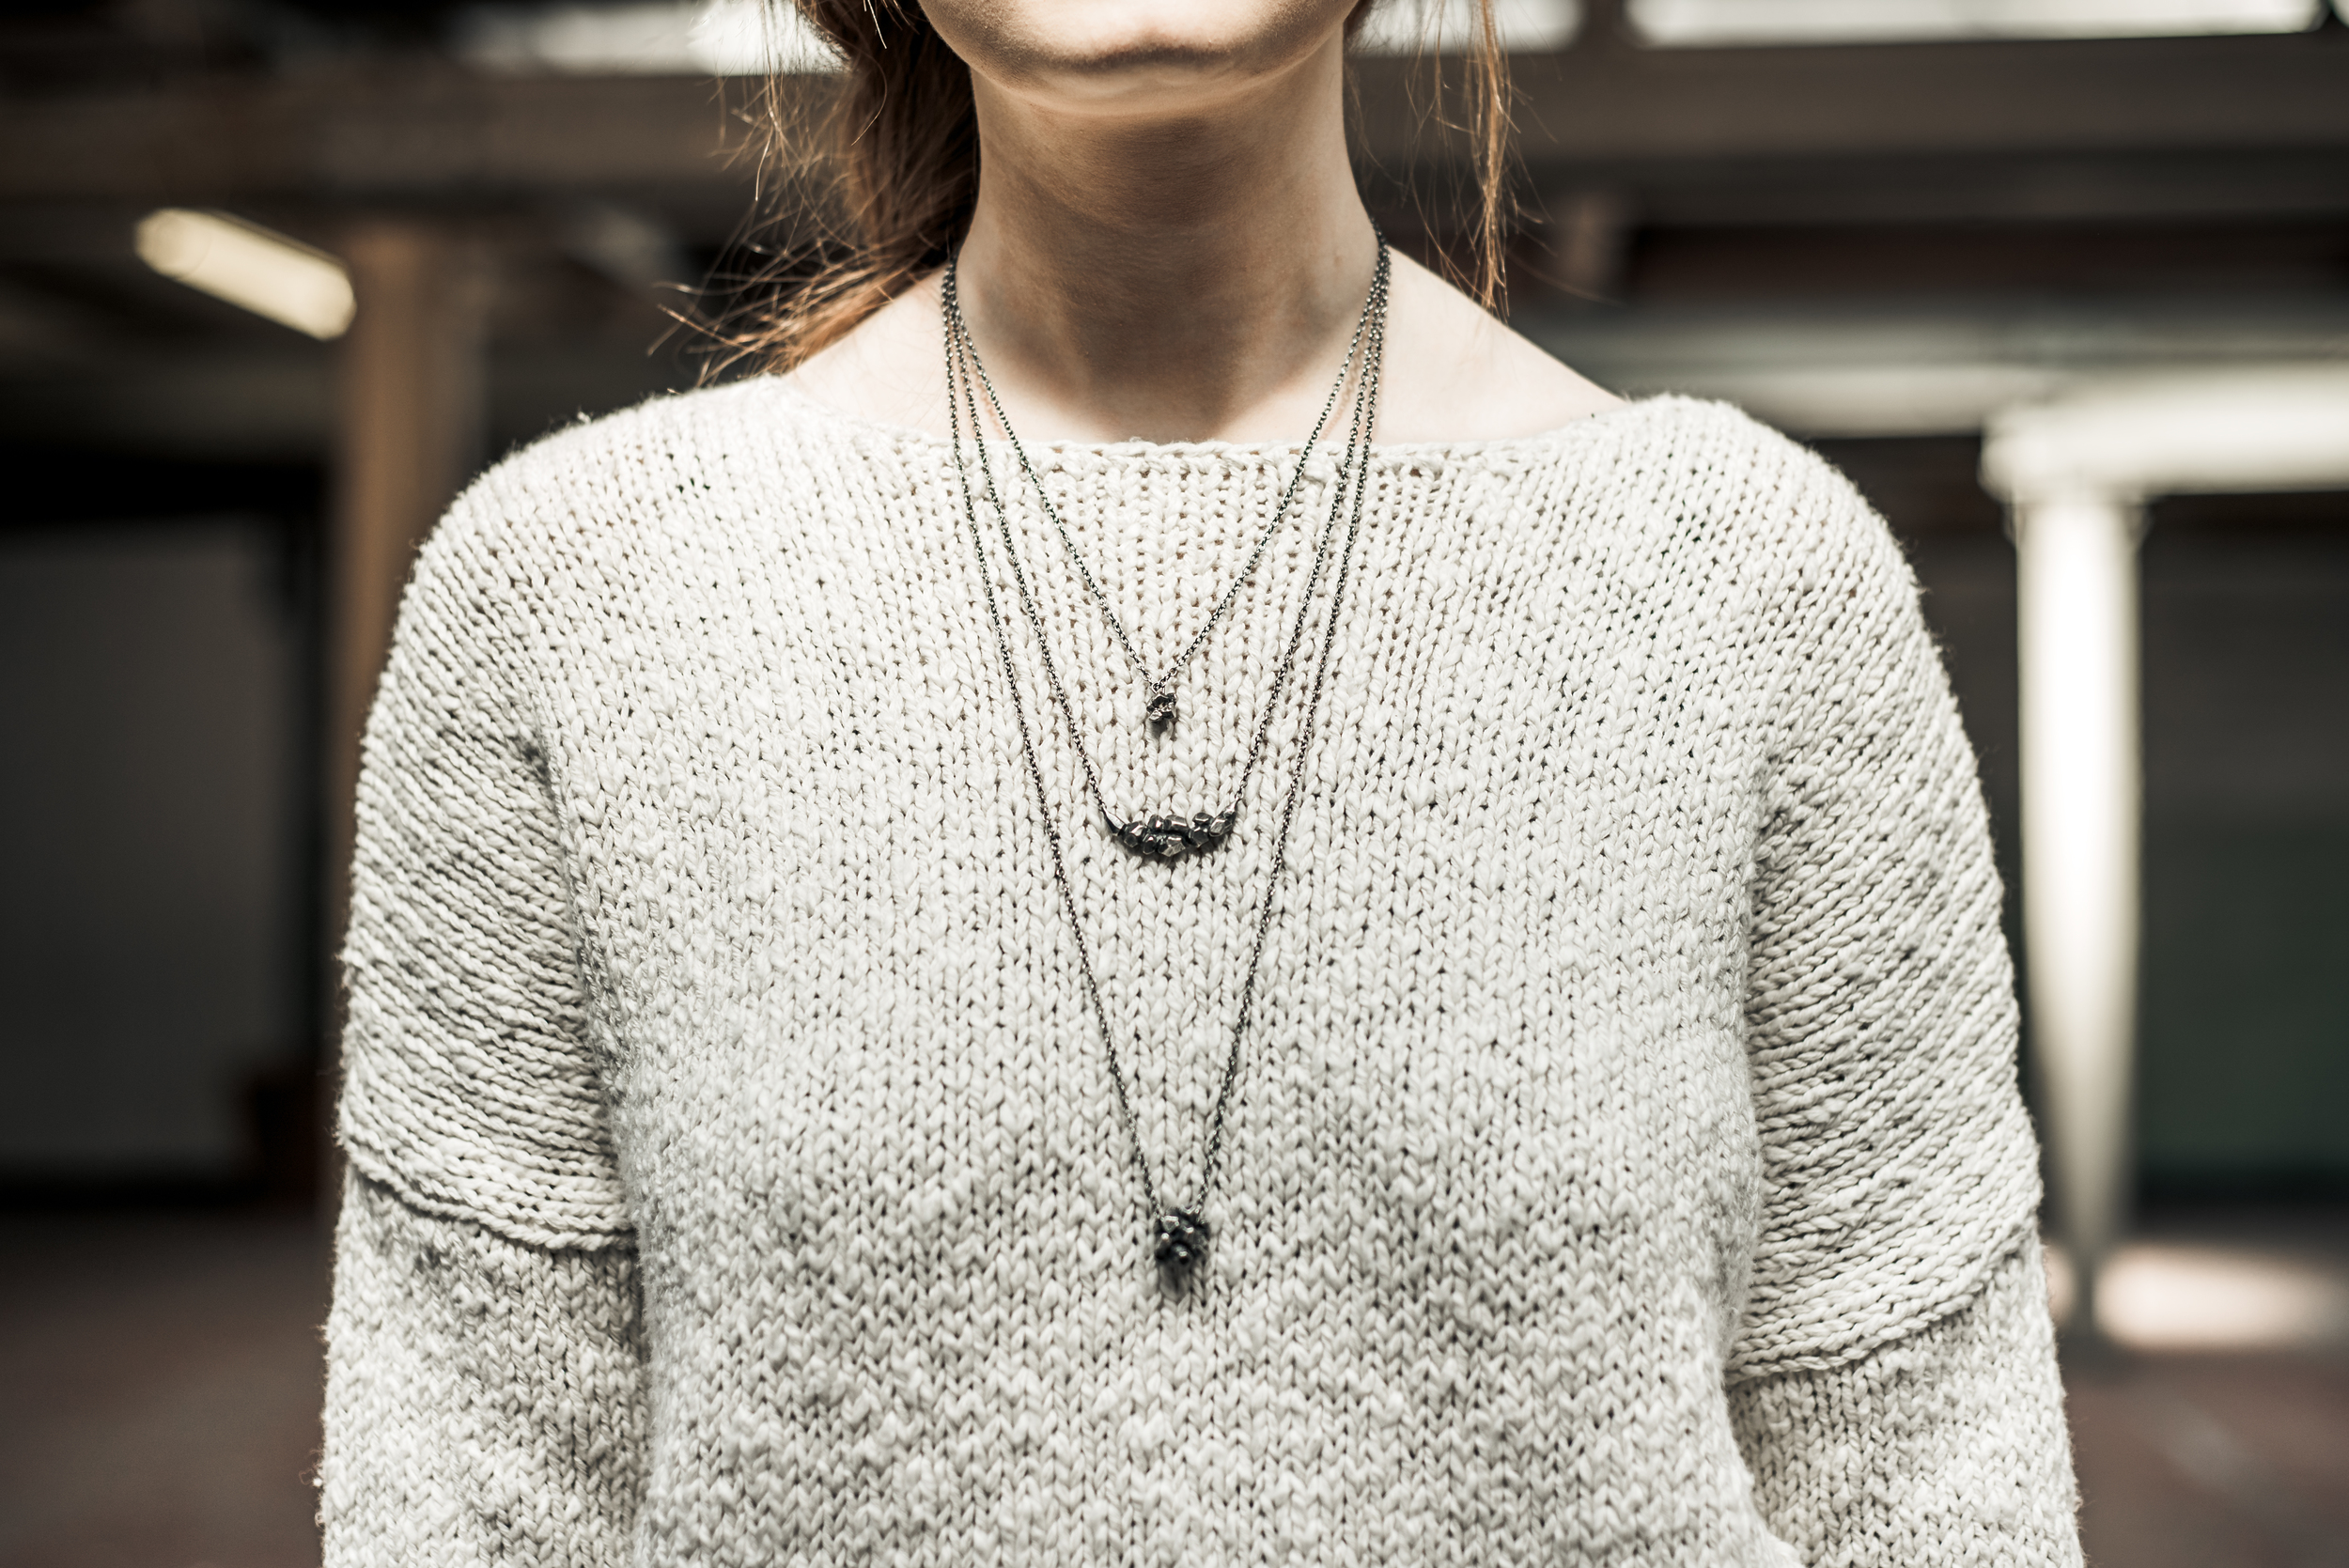 FROM TOP TOP BOTTOM - ROCKY NECKLACE, RIDGE NECKLACE, CLUSTER PENDANT.jpg